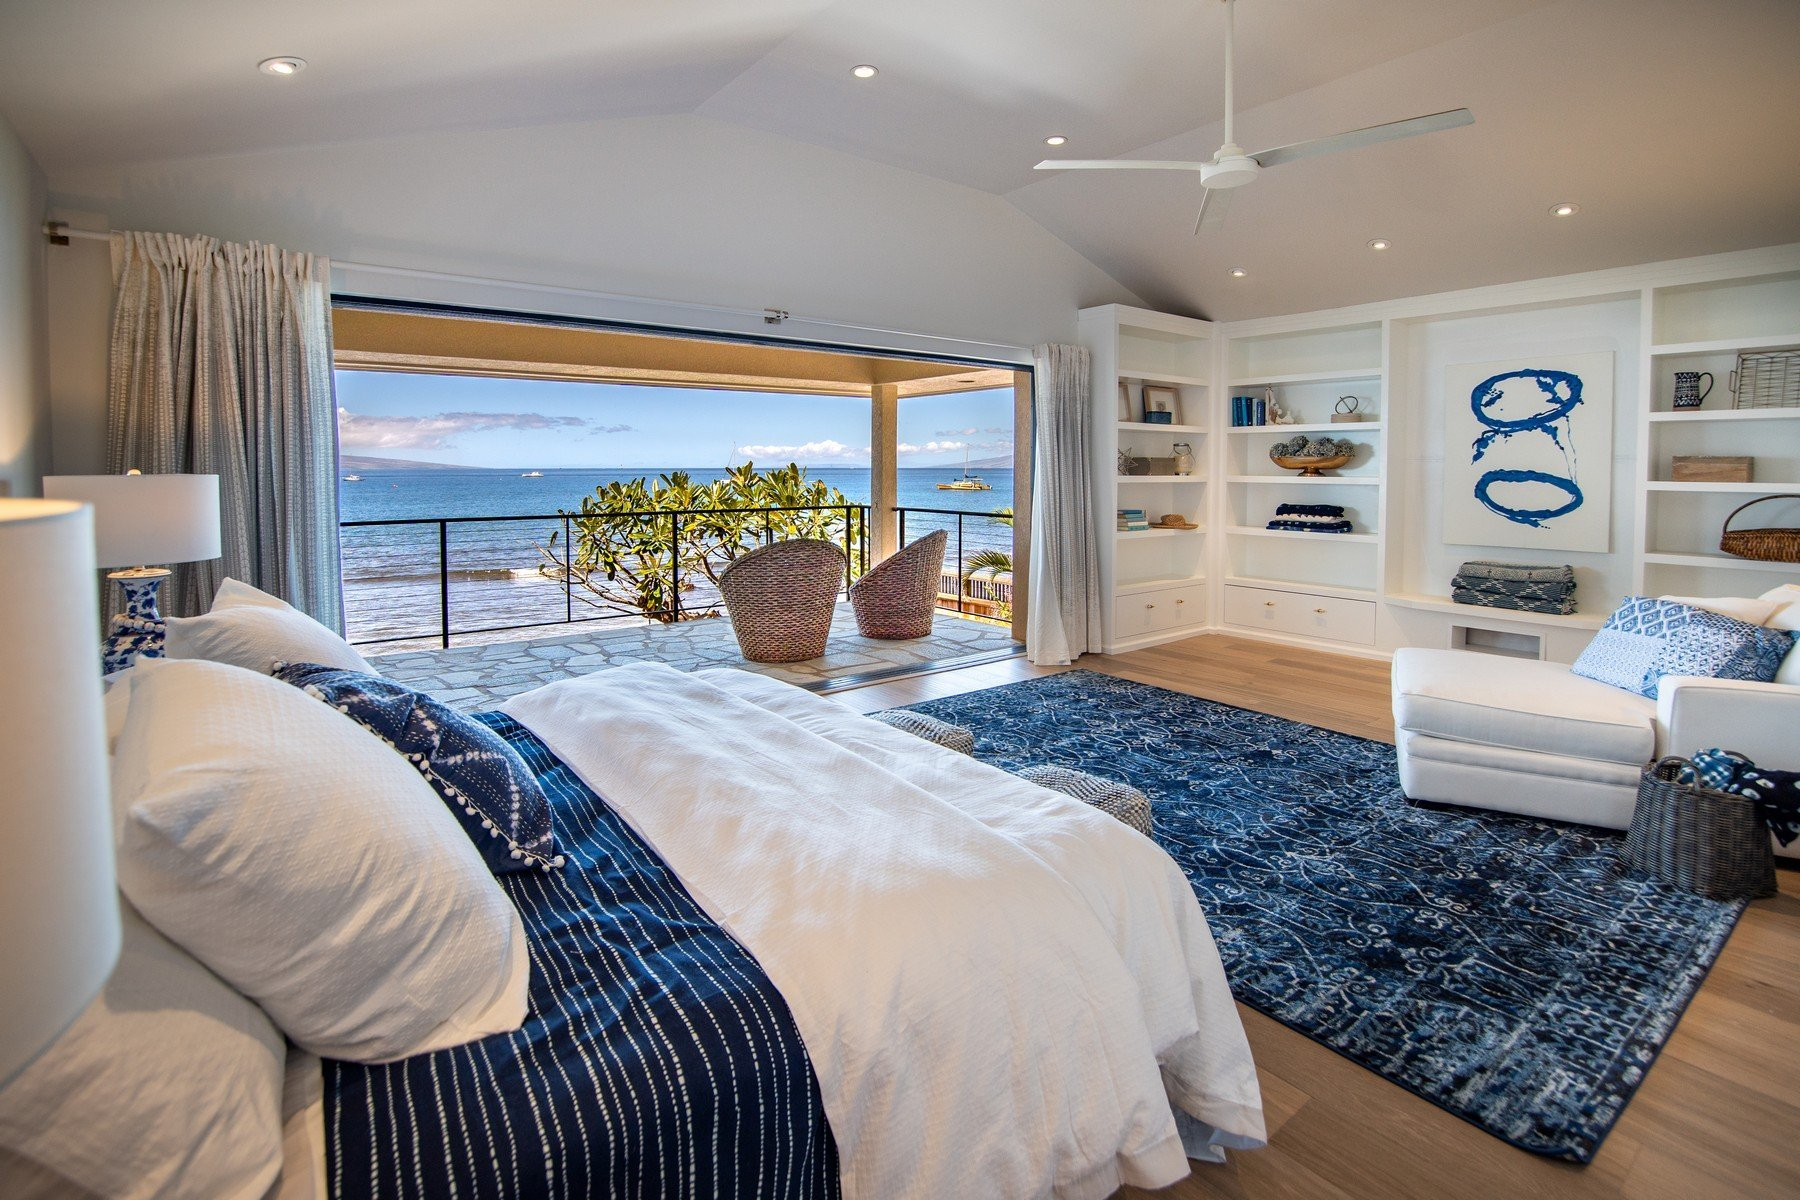 Oceanfront Home for Sale on Maui